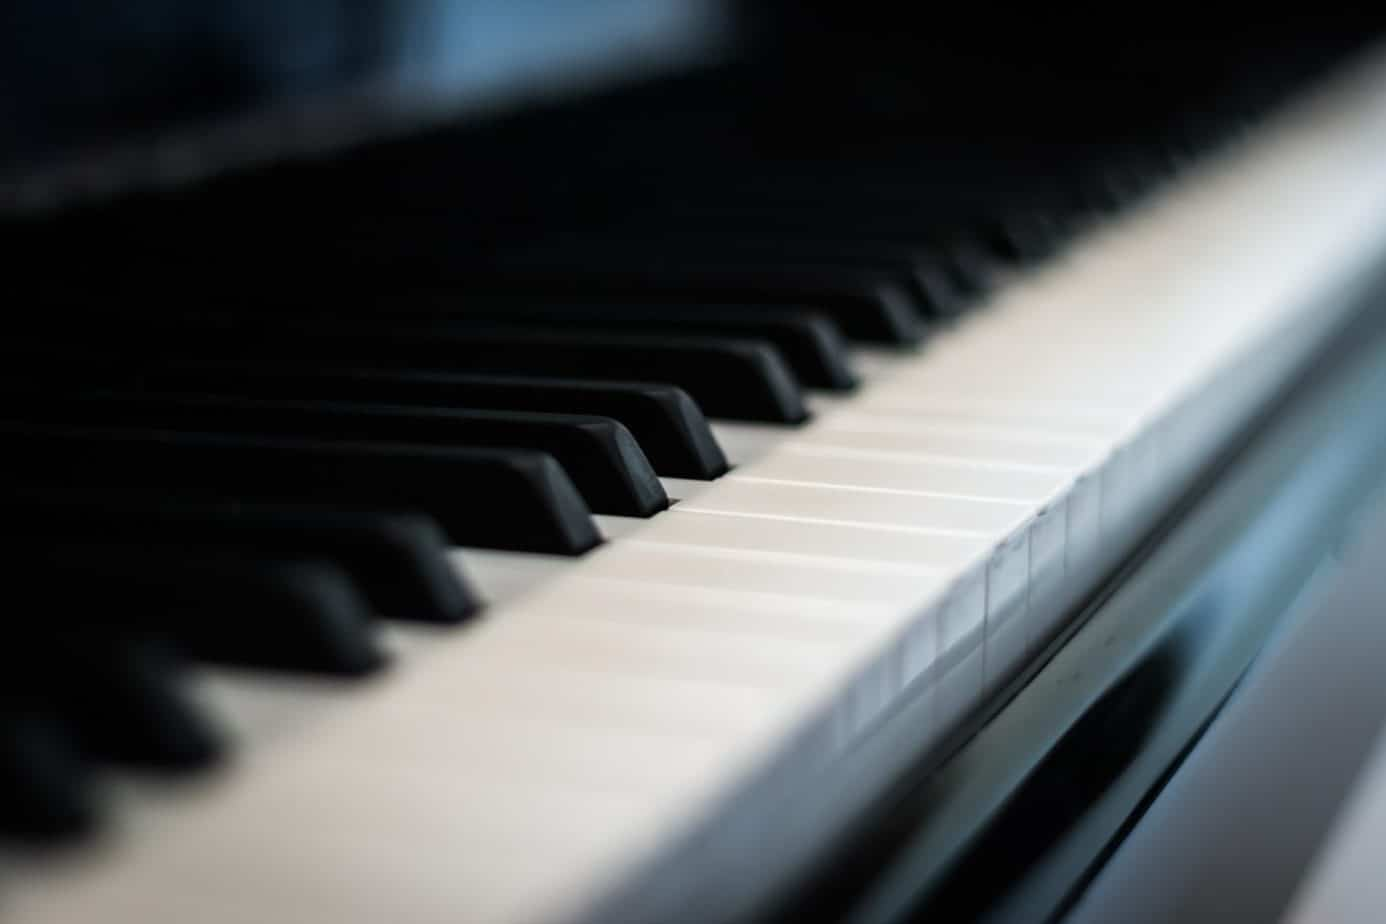 a close up of the keys on a piano